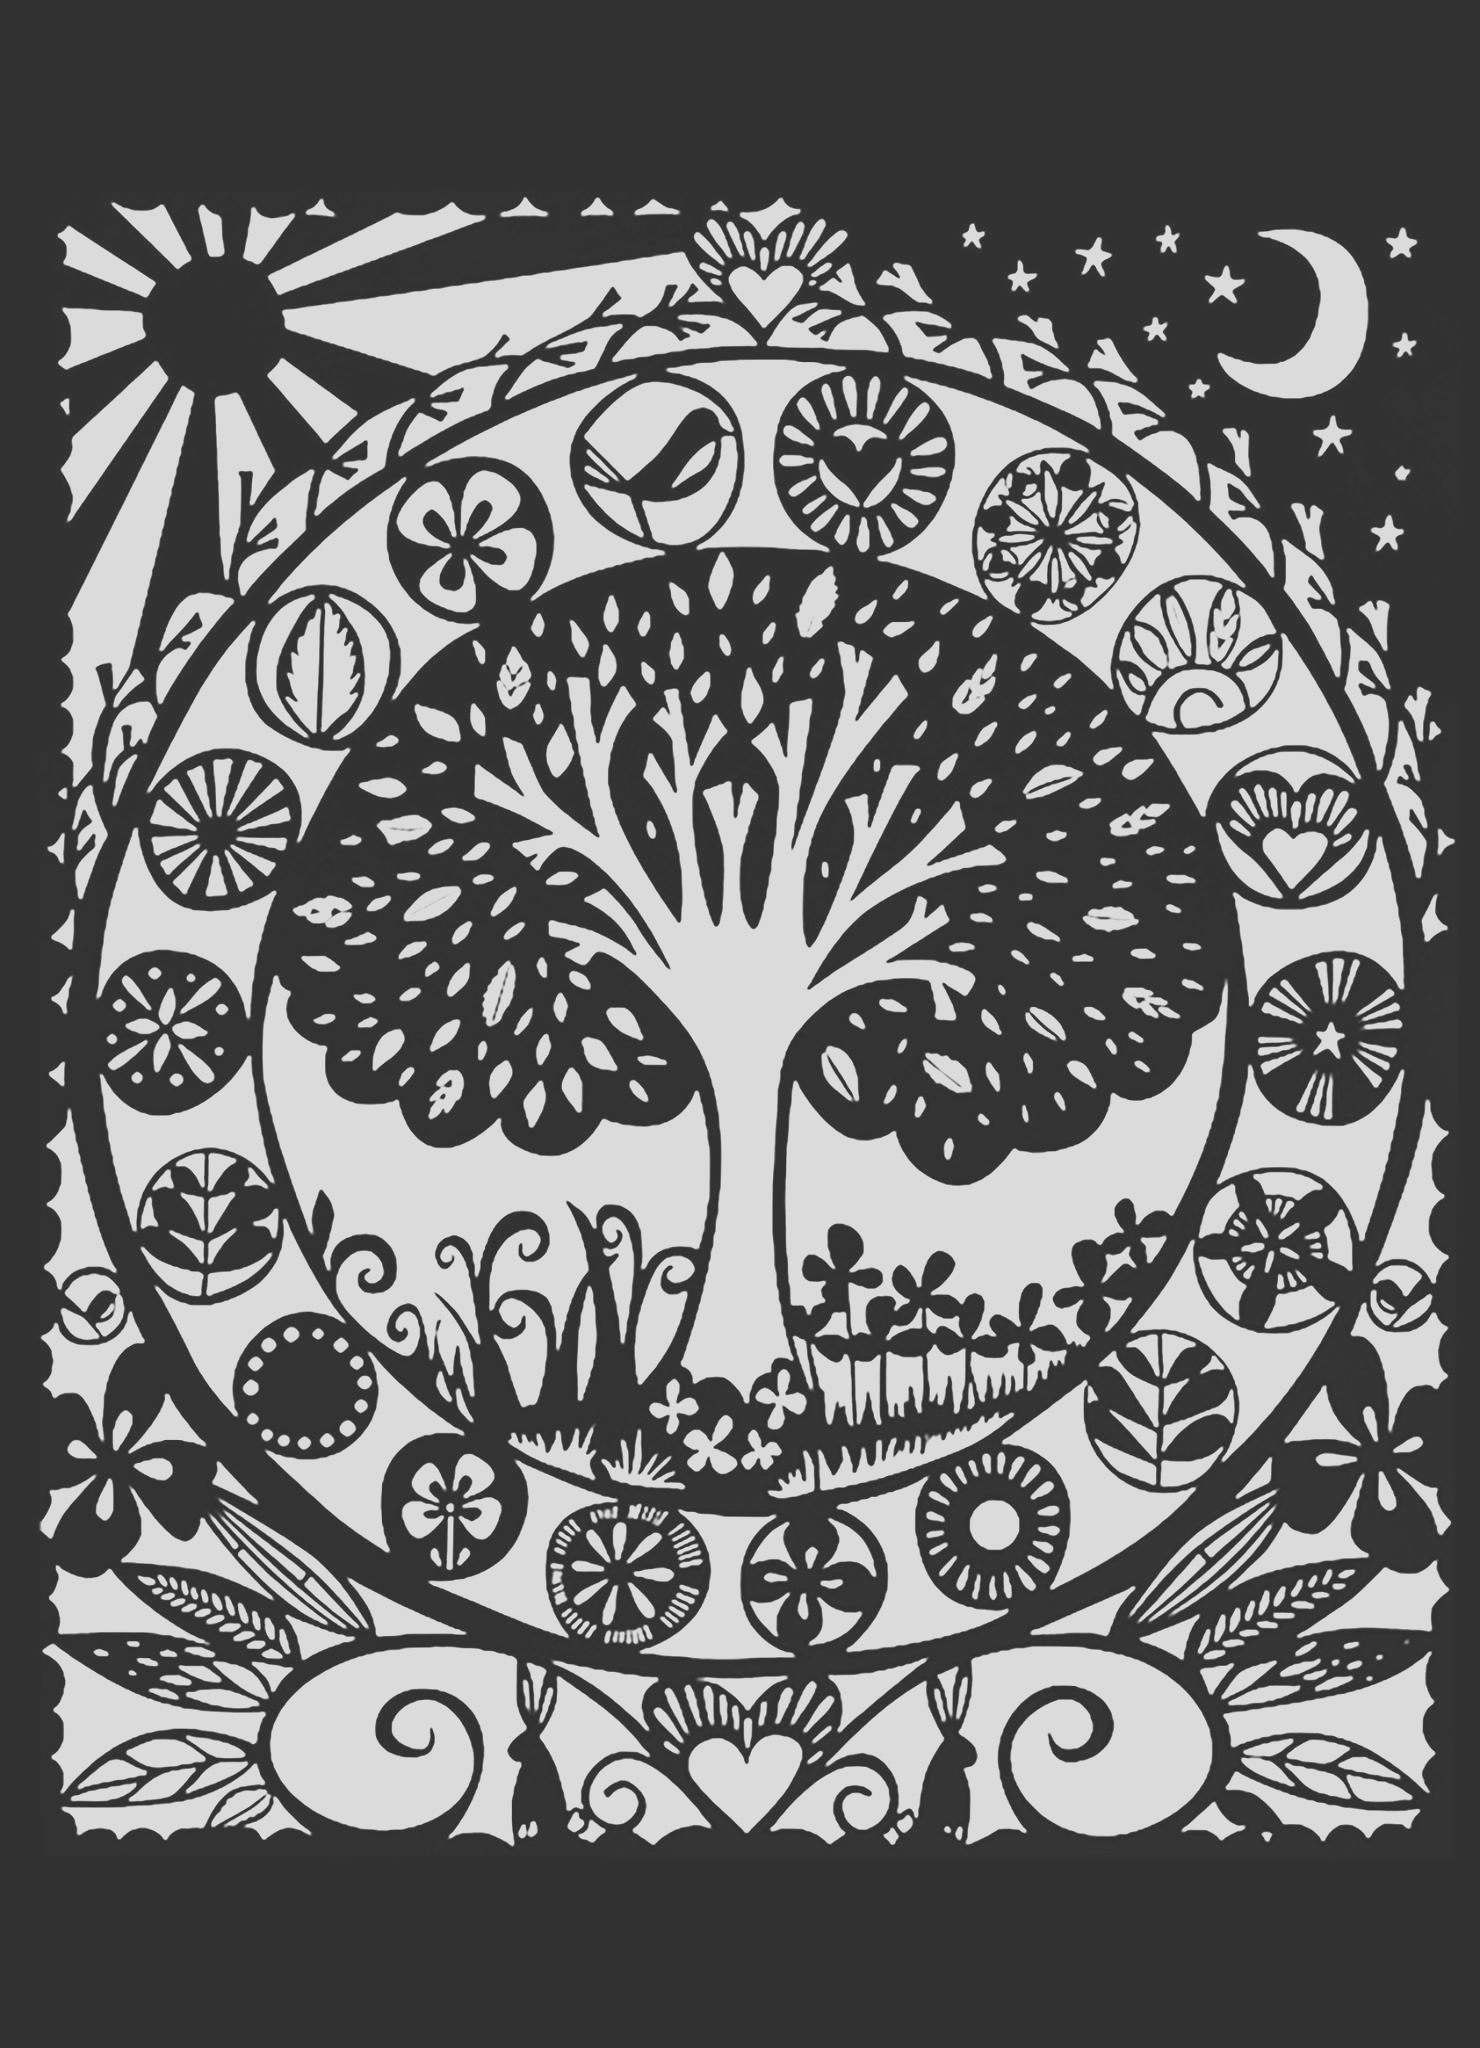 2 image=fleurs et ve ation coloring adult tree black white 1 1